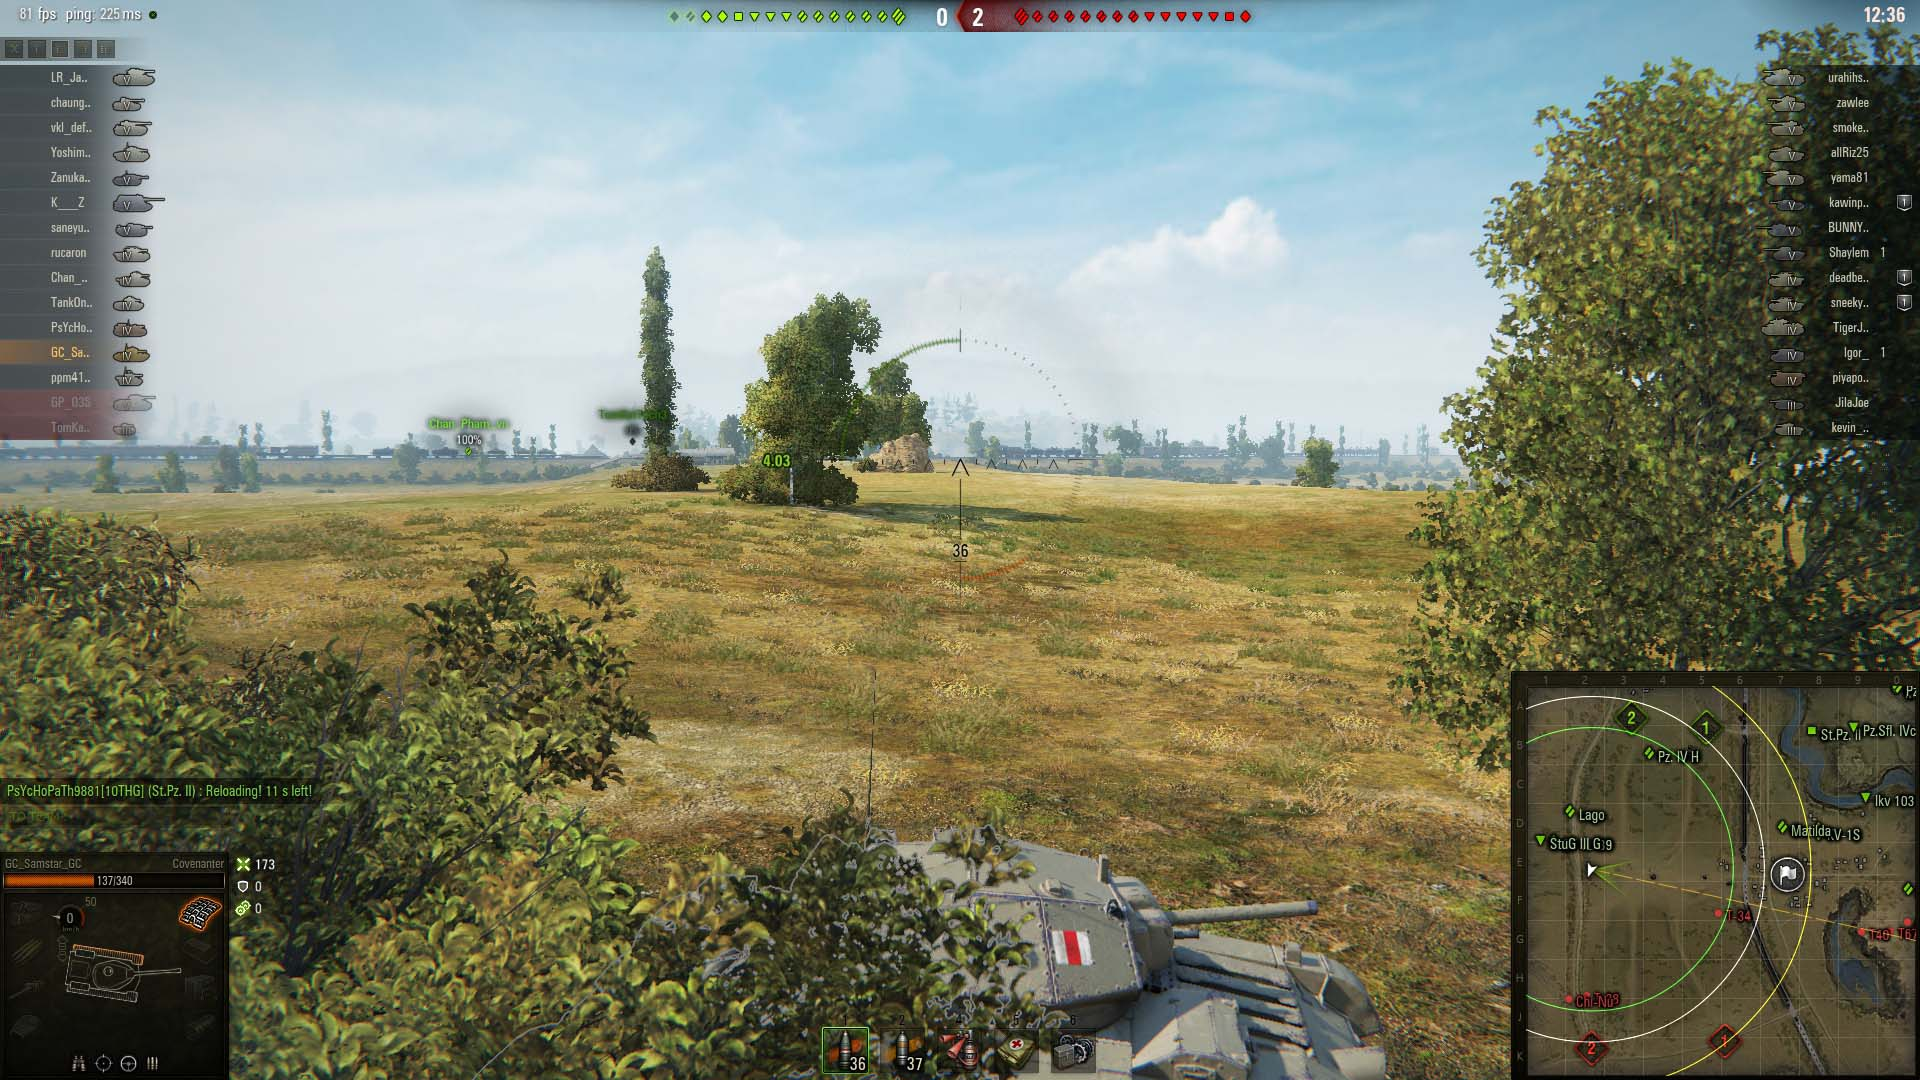 Being able to look around your tank without moving your gun helps keep the reticule tight and focused.